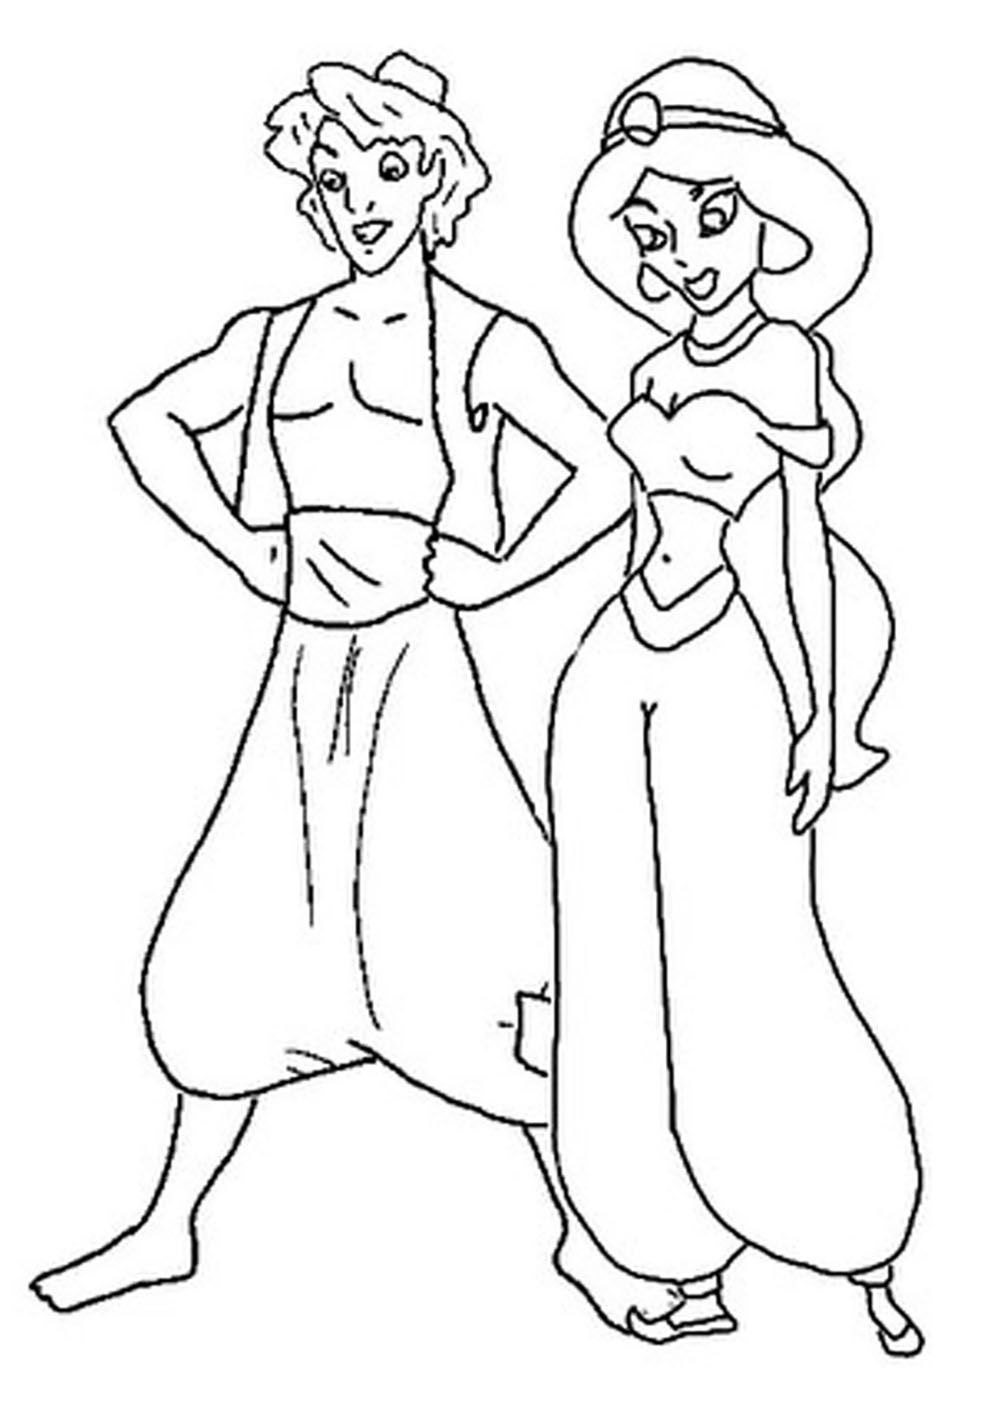 Aladdin Standing With Jasmine | Coloring Book Pages | Pinterest